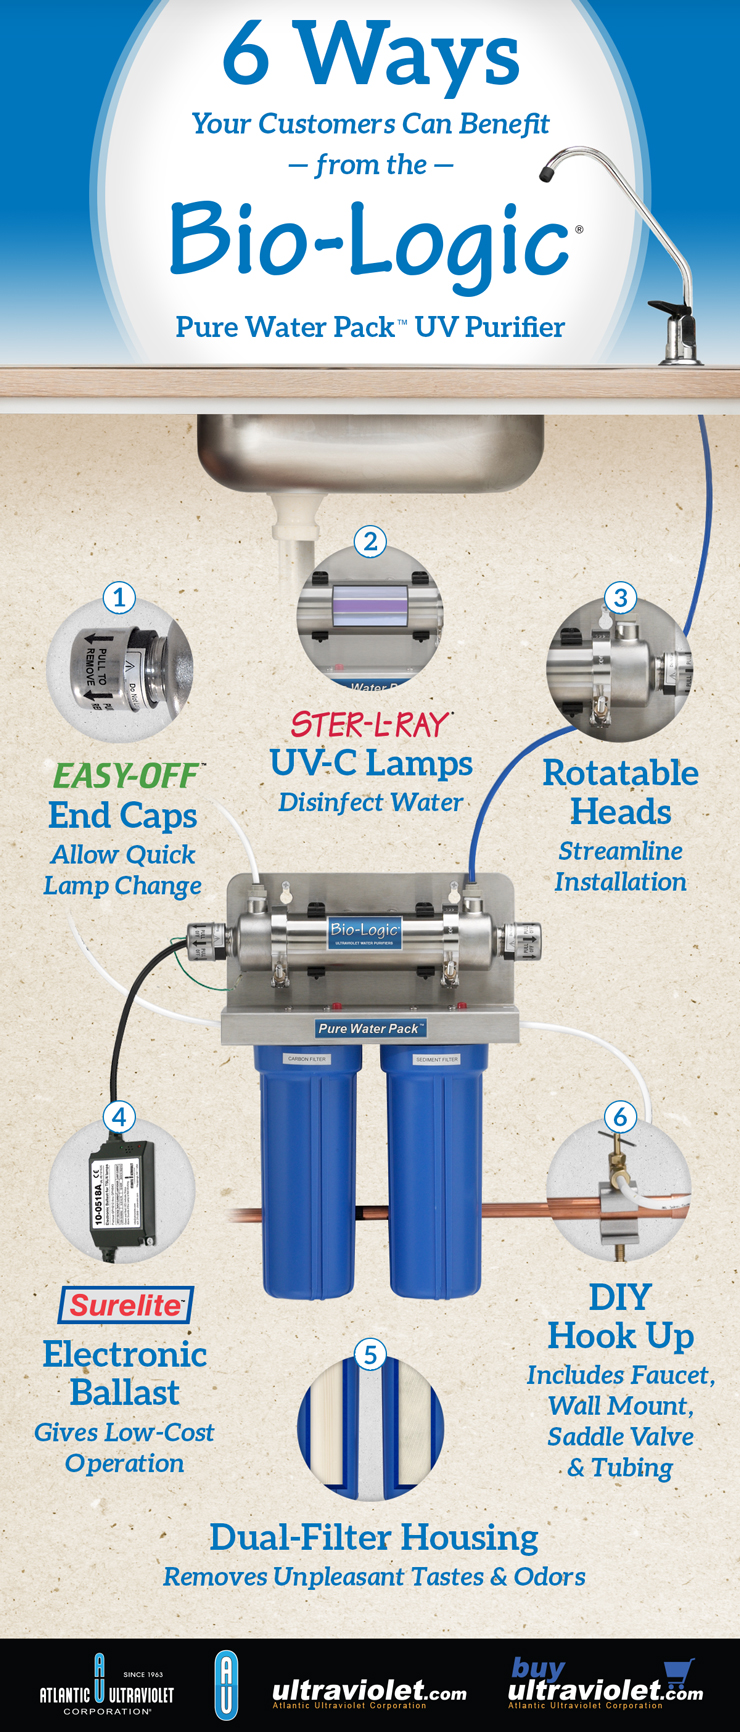 6 Ways Your Customers Benefit from the Bio-Logic Pure Water Pack UV Purifier - Infographic